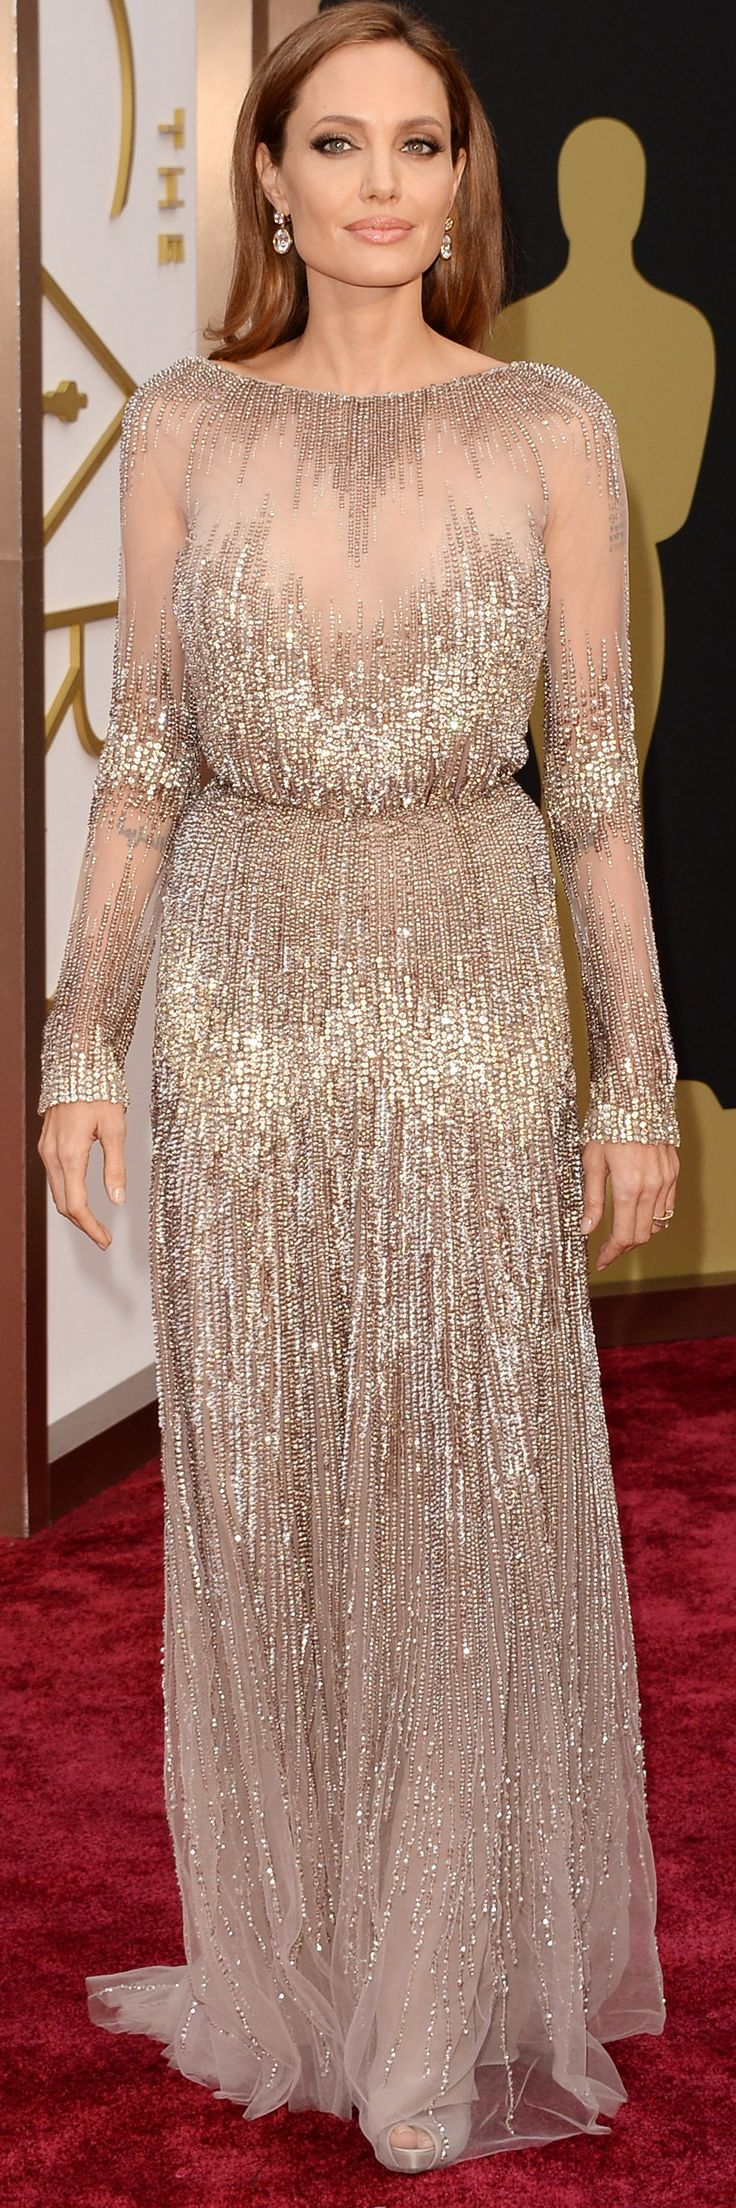 Angelina Jolie in a sparkling and sheer Elie Saab dress on the red carpet at the Academy Awards. #oscars